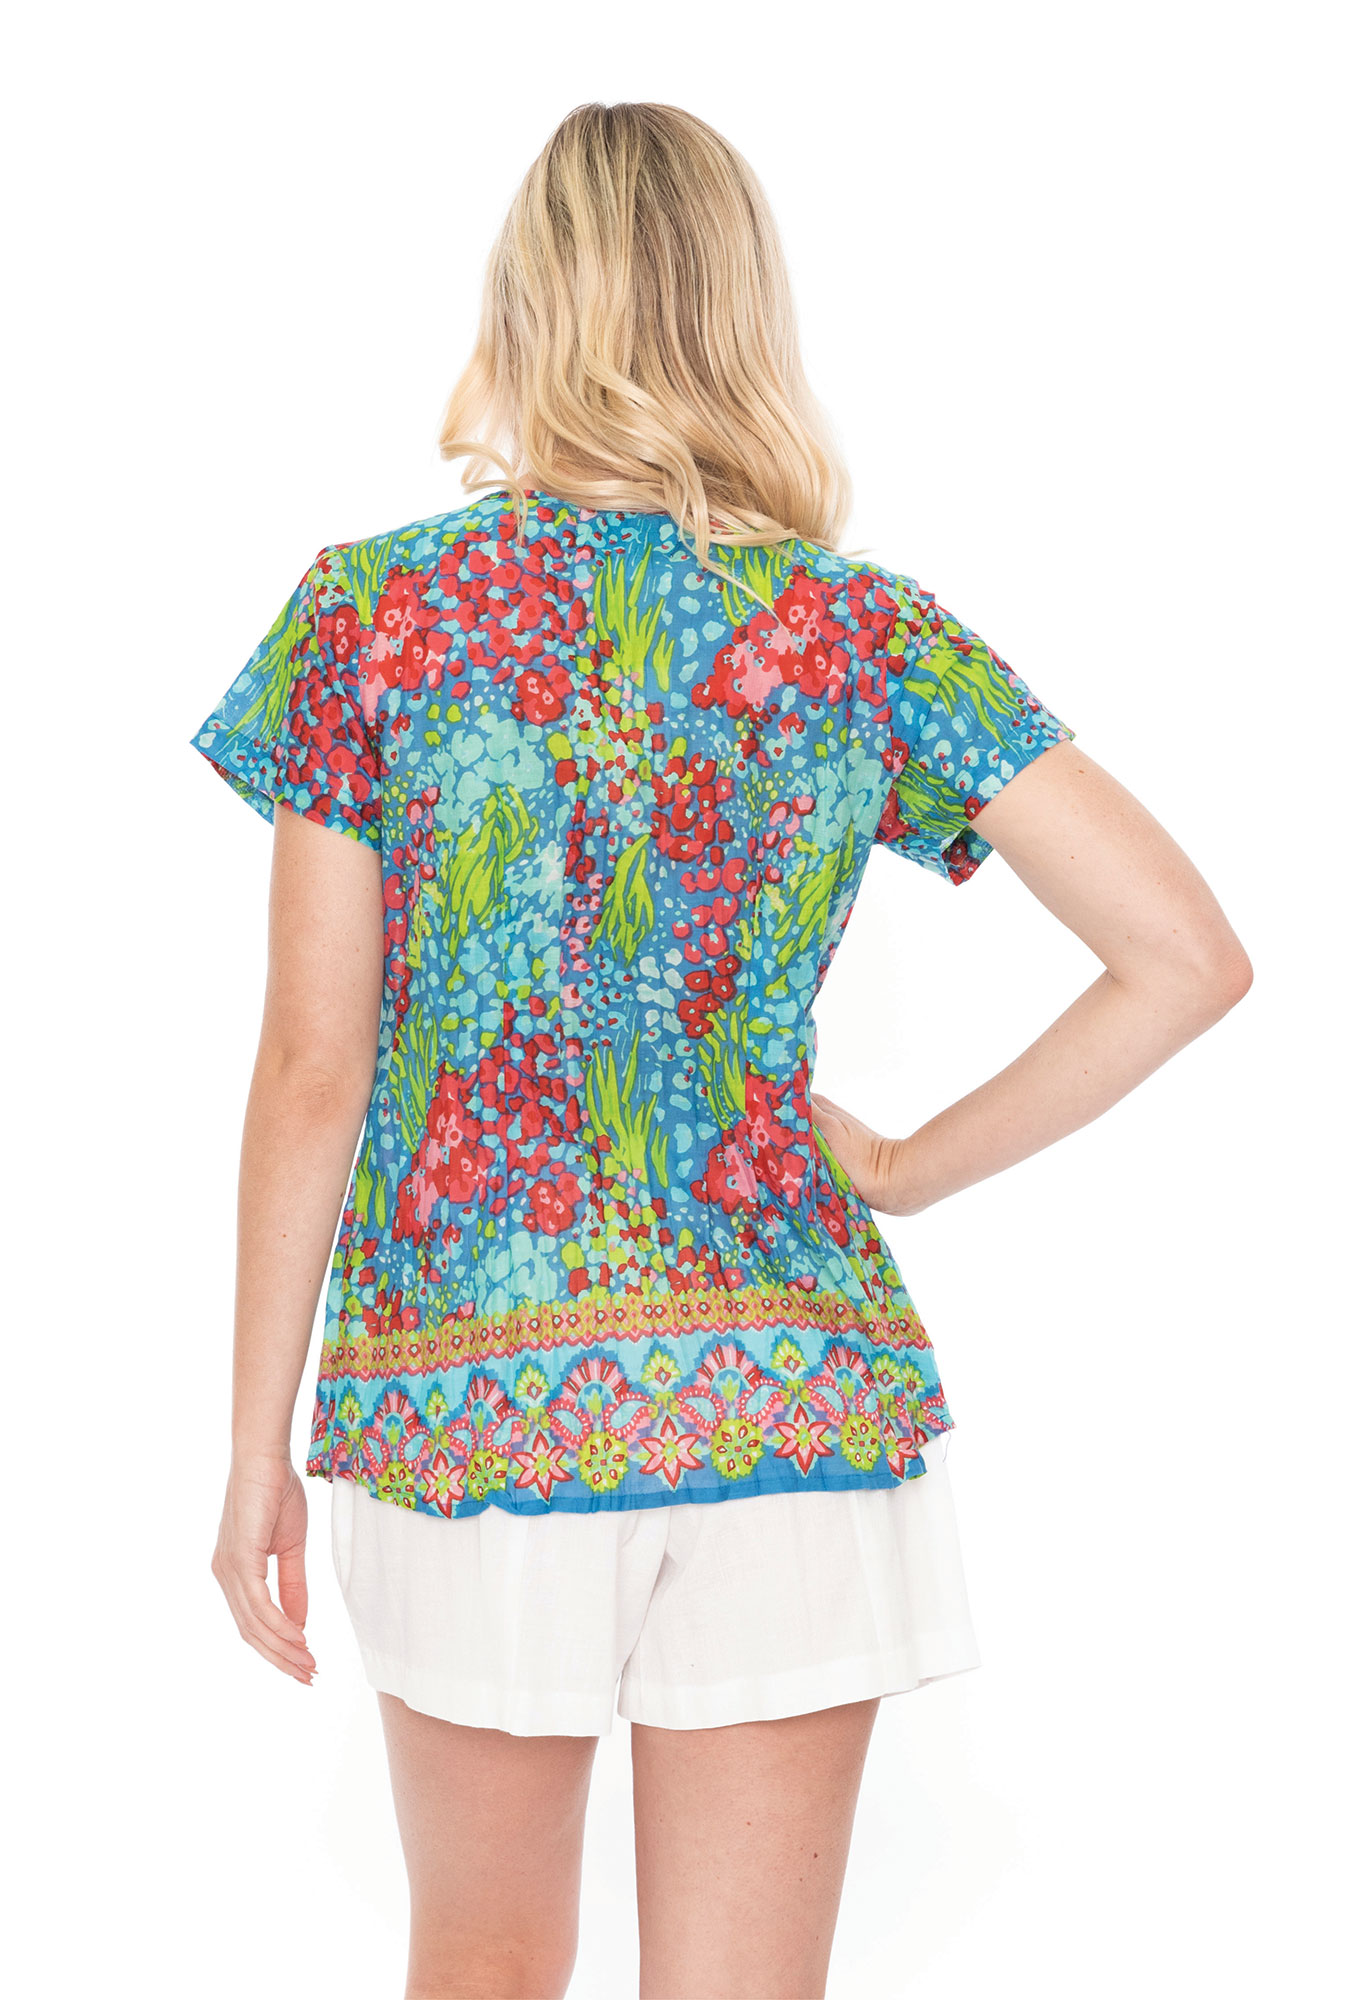 Maggie Top in Blue and Pink Floral